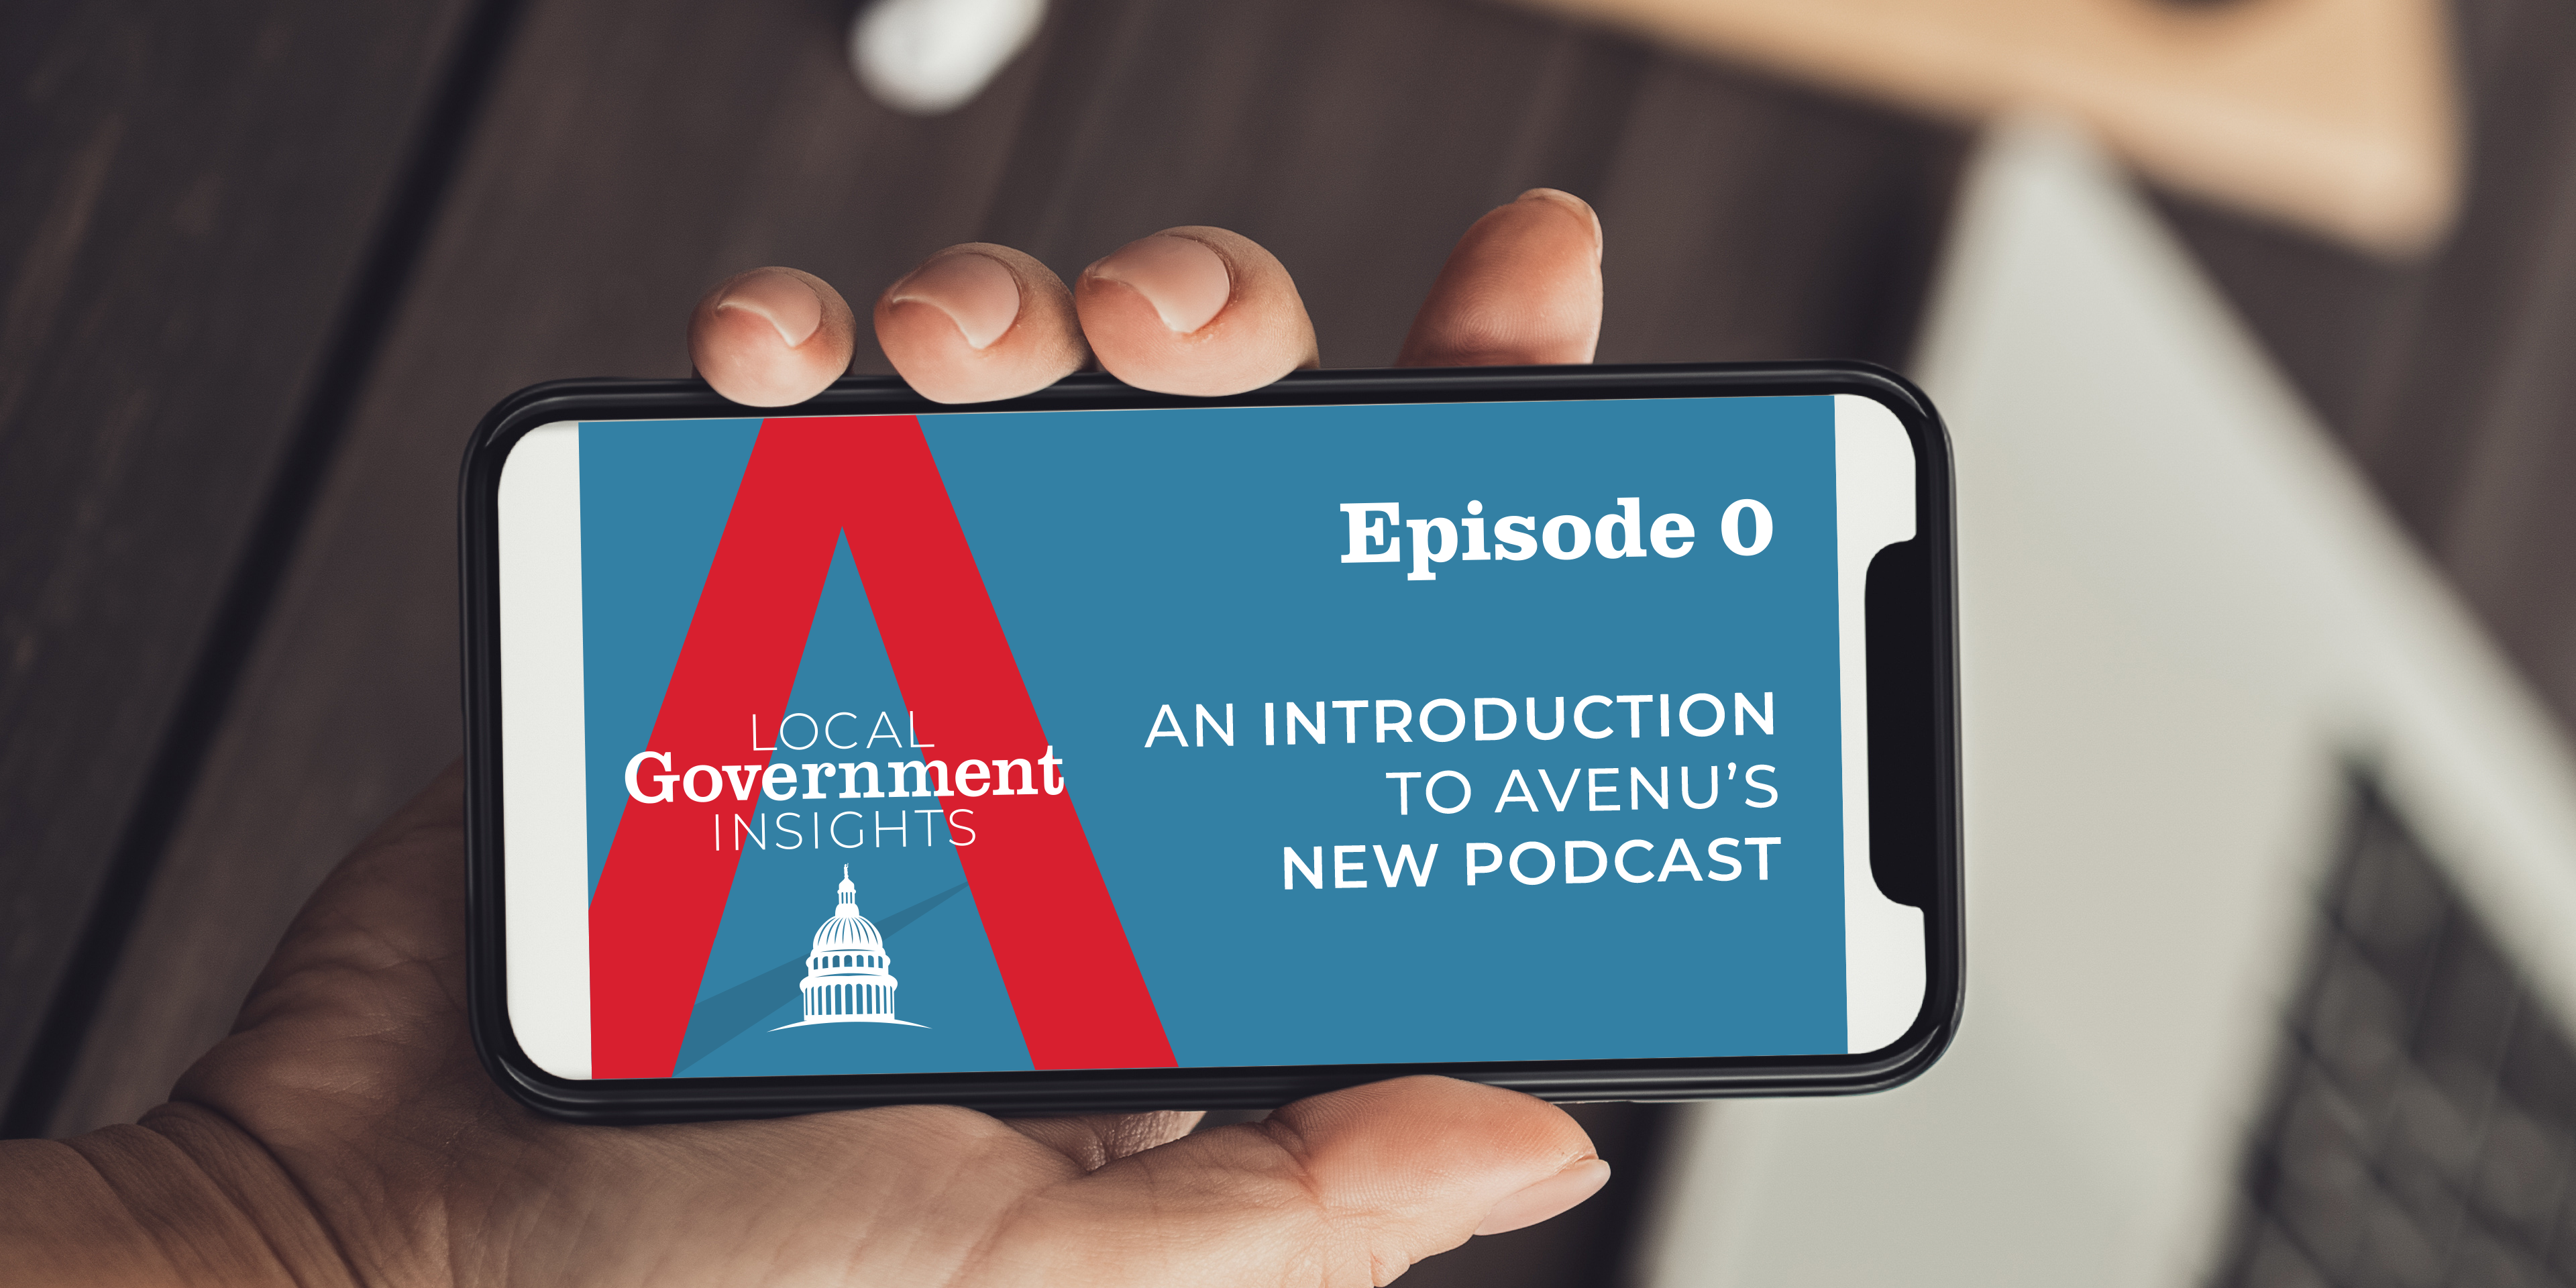 Local Government Insights: An Introduction to Avenu's New Podcast